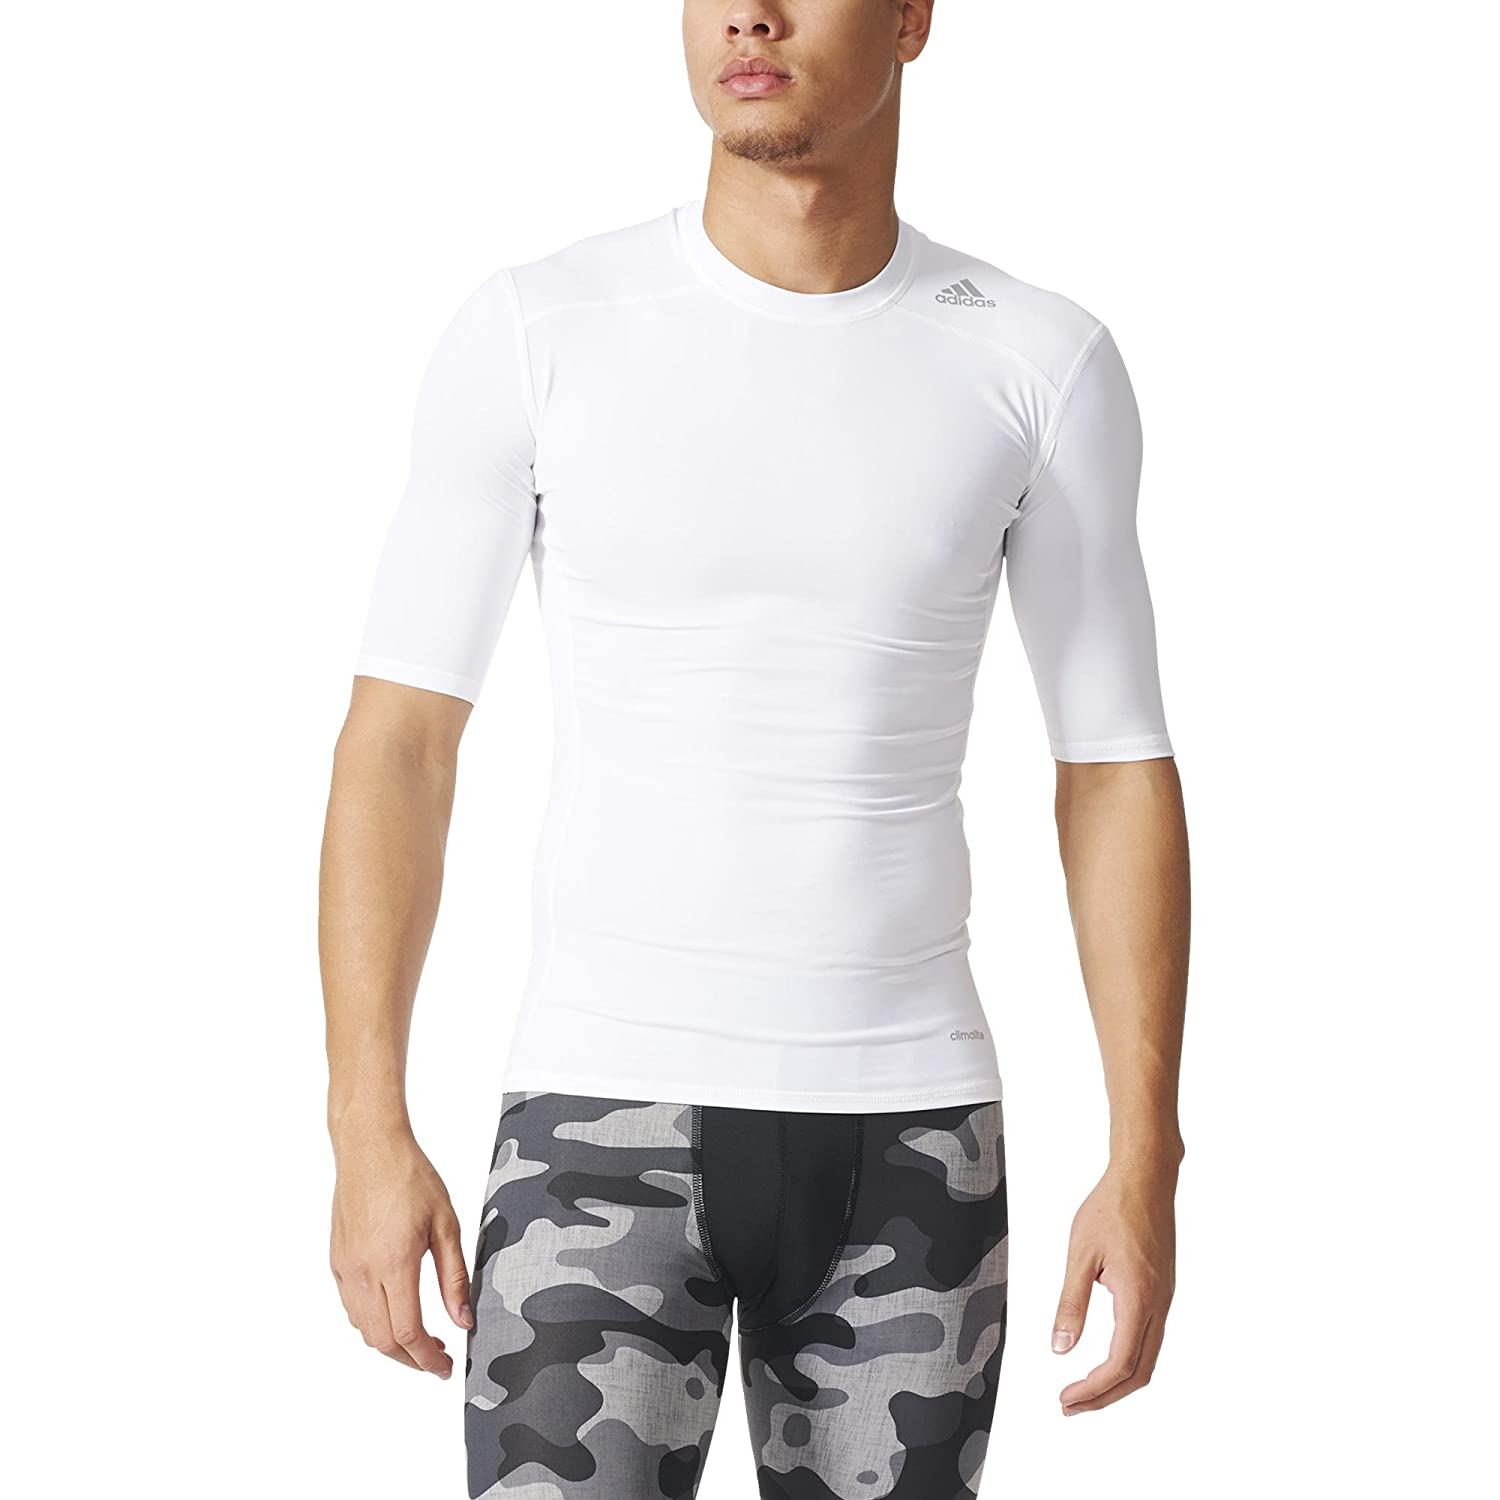 76b42e2ac adidas Men's Tech Fit Base T-Shirt: Amazon.co.uk: Clothing